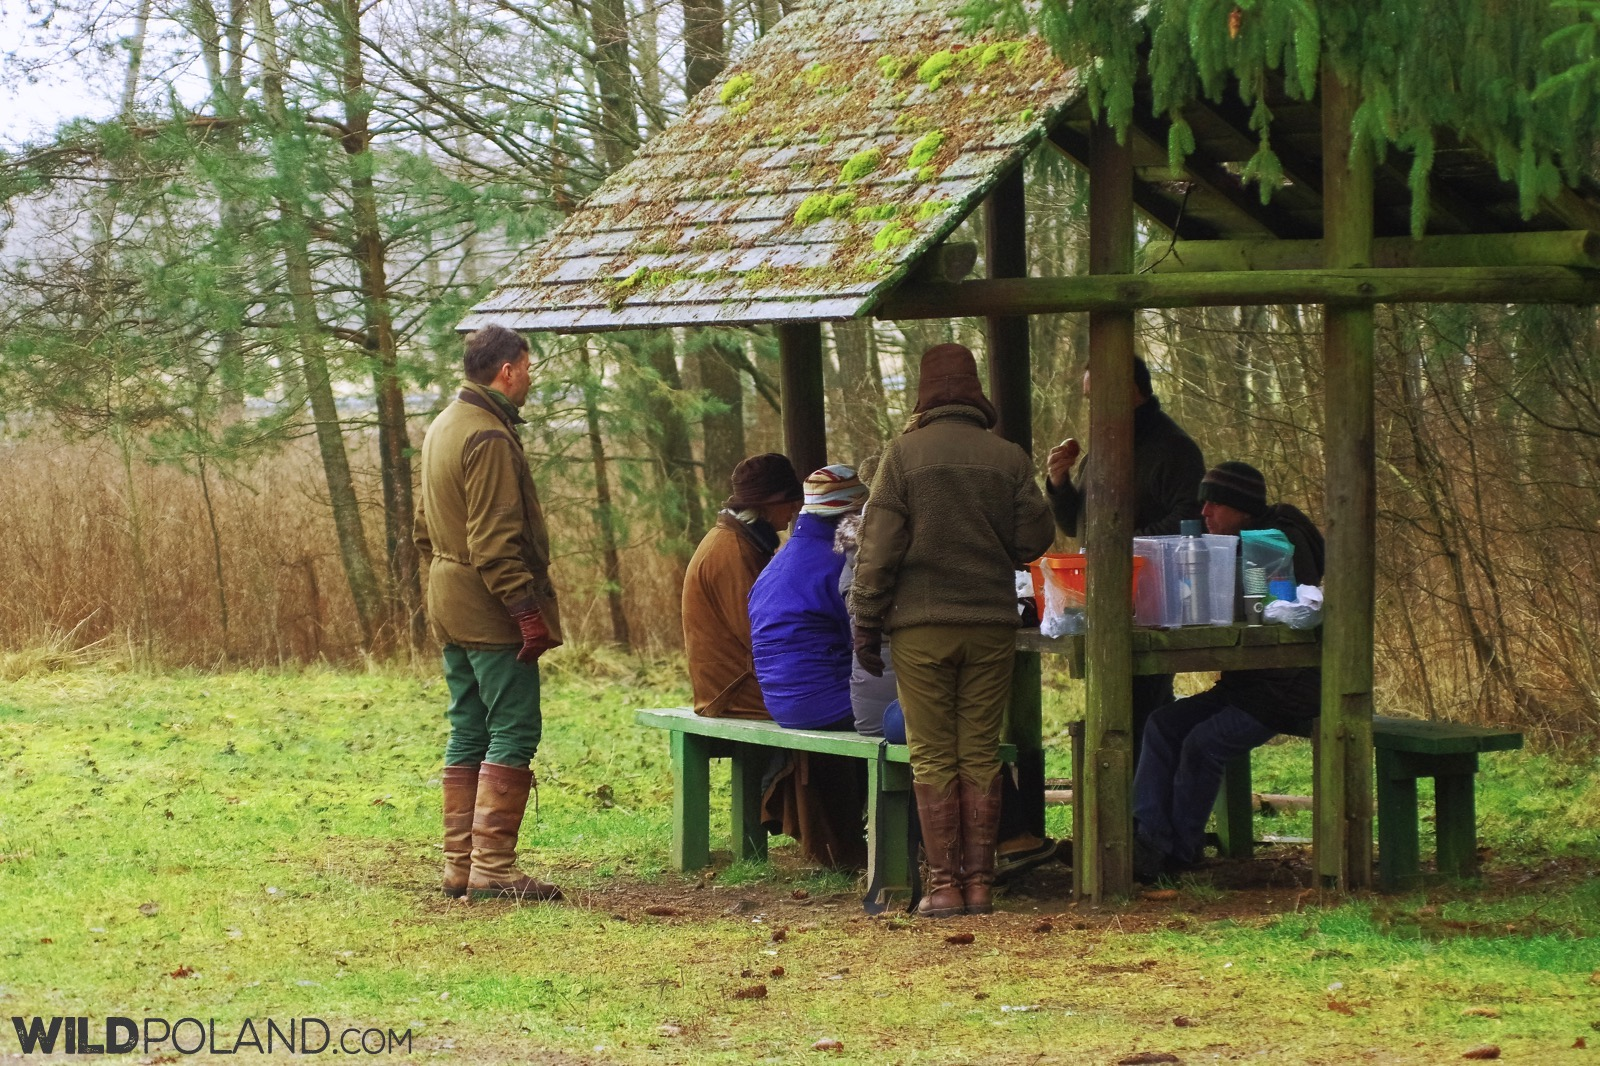 Wild Poland group having a short coffee break, photo by Andrzej Petryna